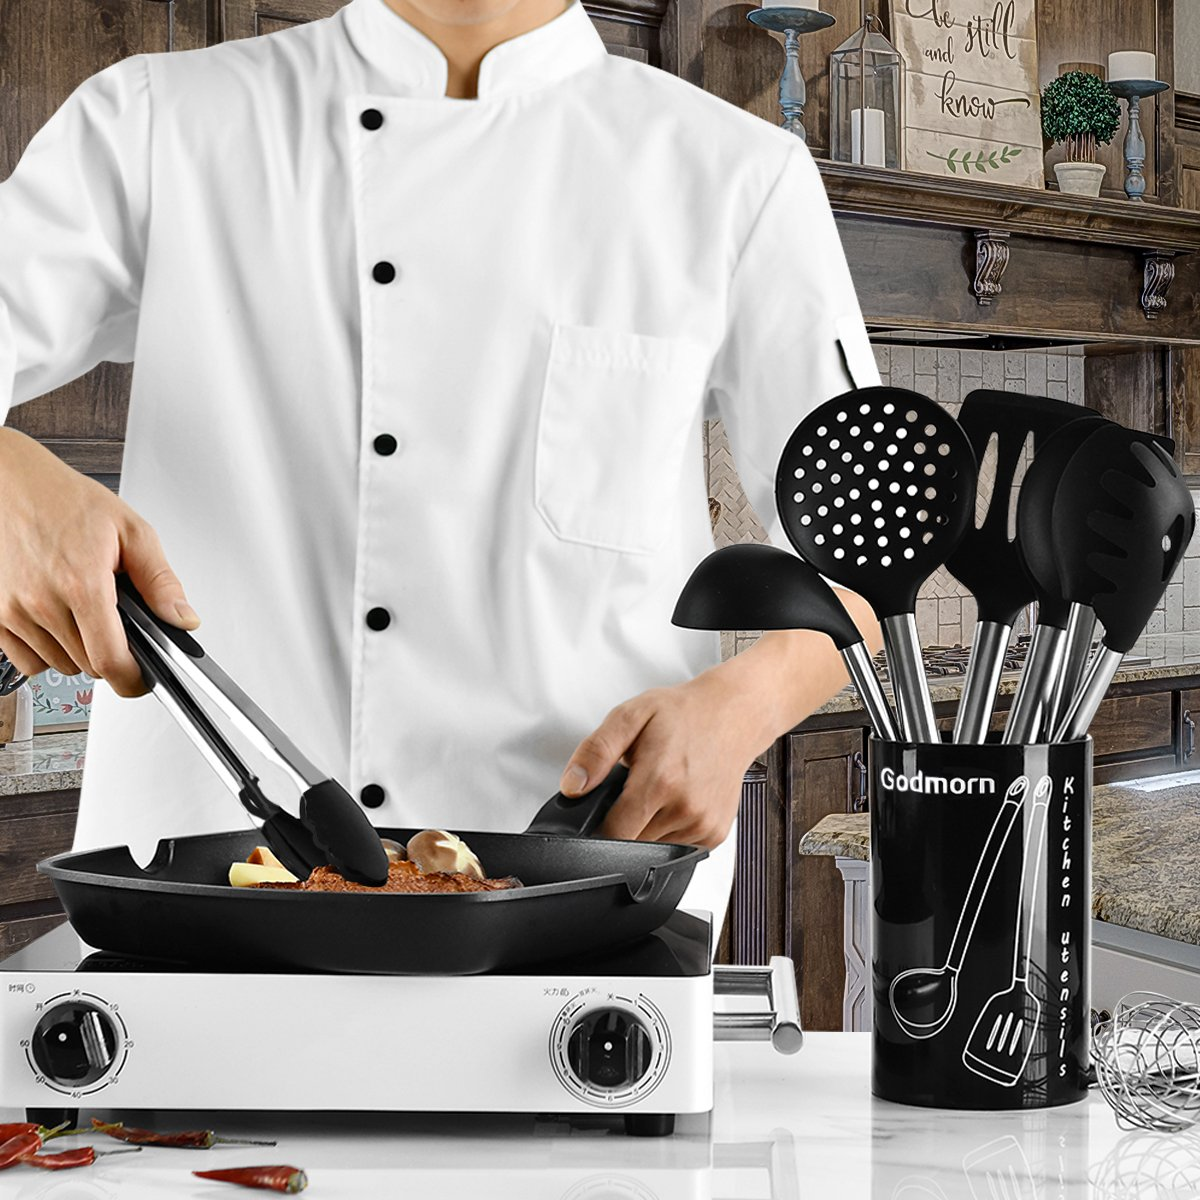 Godmorn Silicone Kitchen Utensil Sets 9 Pcs Stainless Steel Cooking Utensil Set